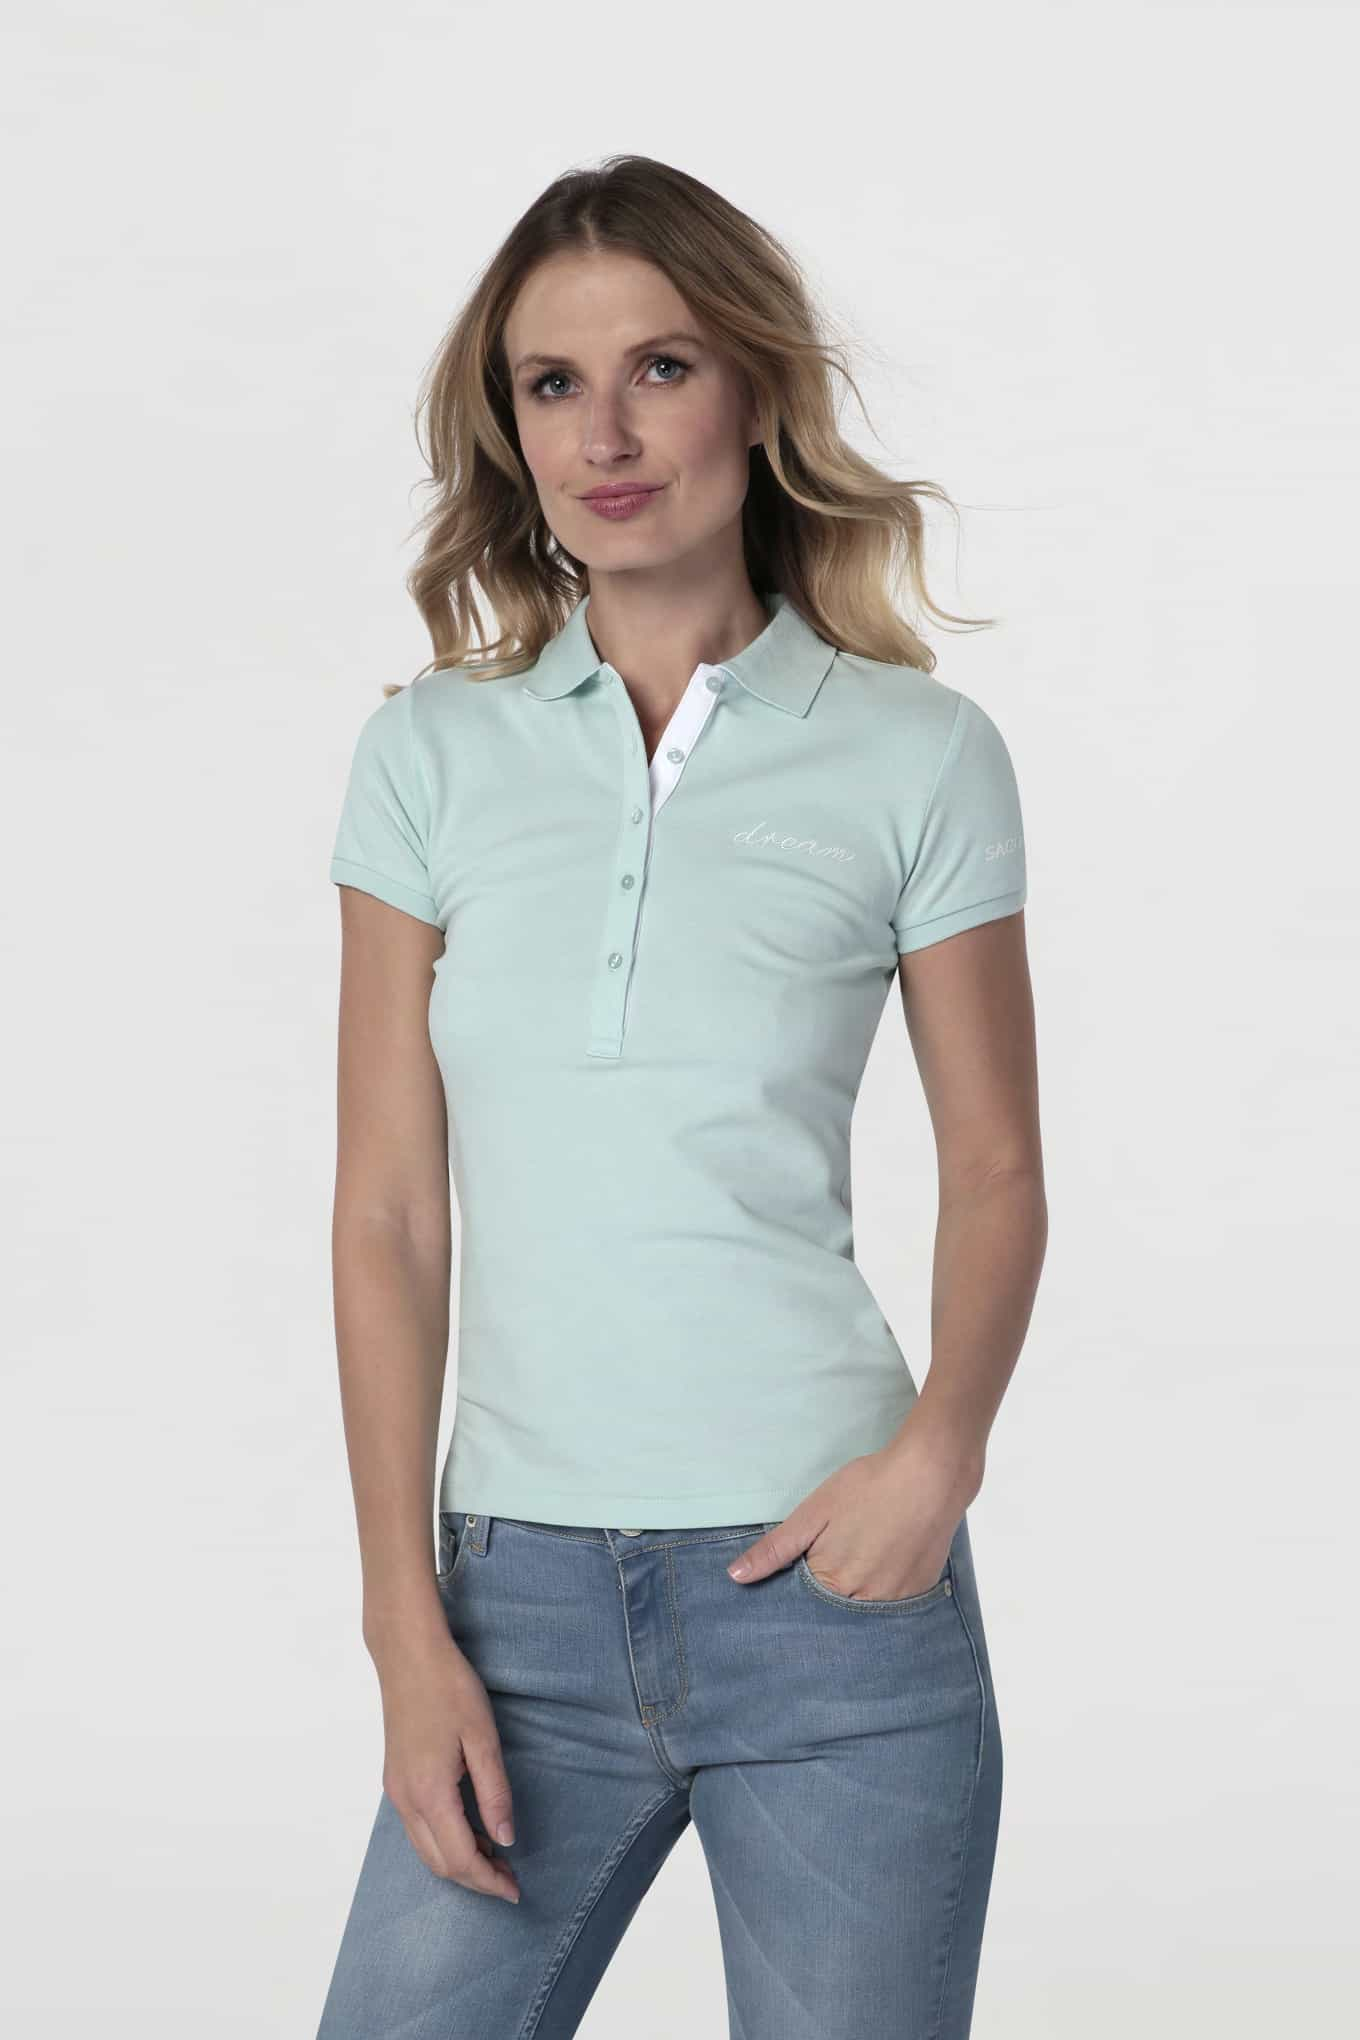 Polo Piquet Turquoise Sport Woman